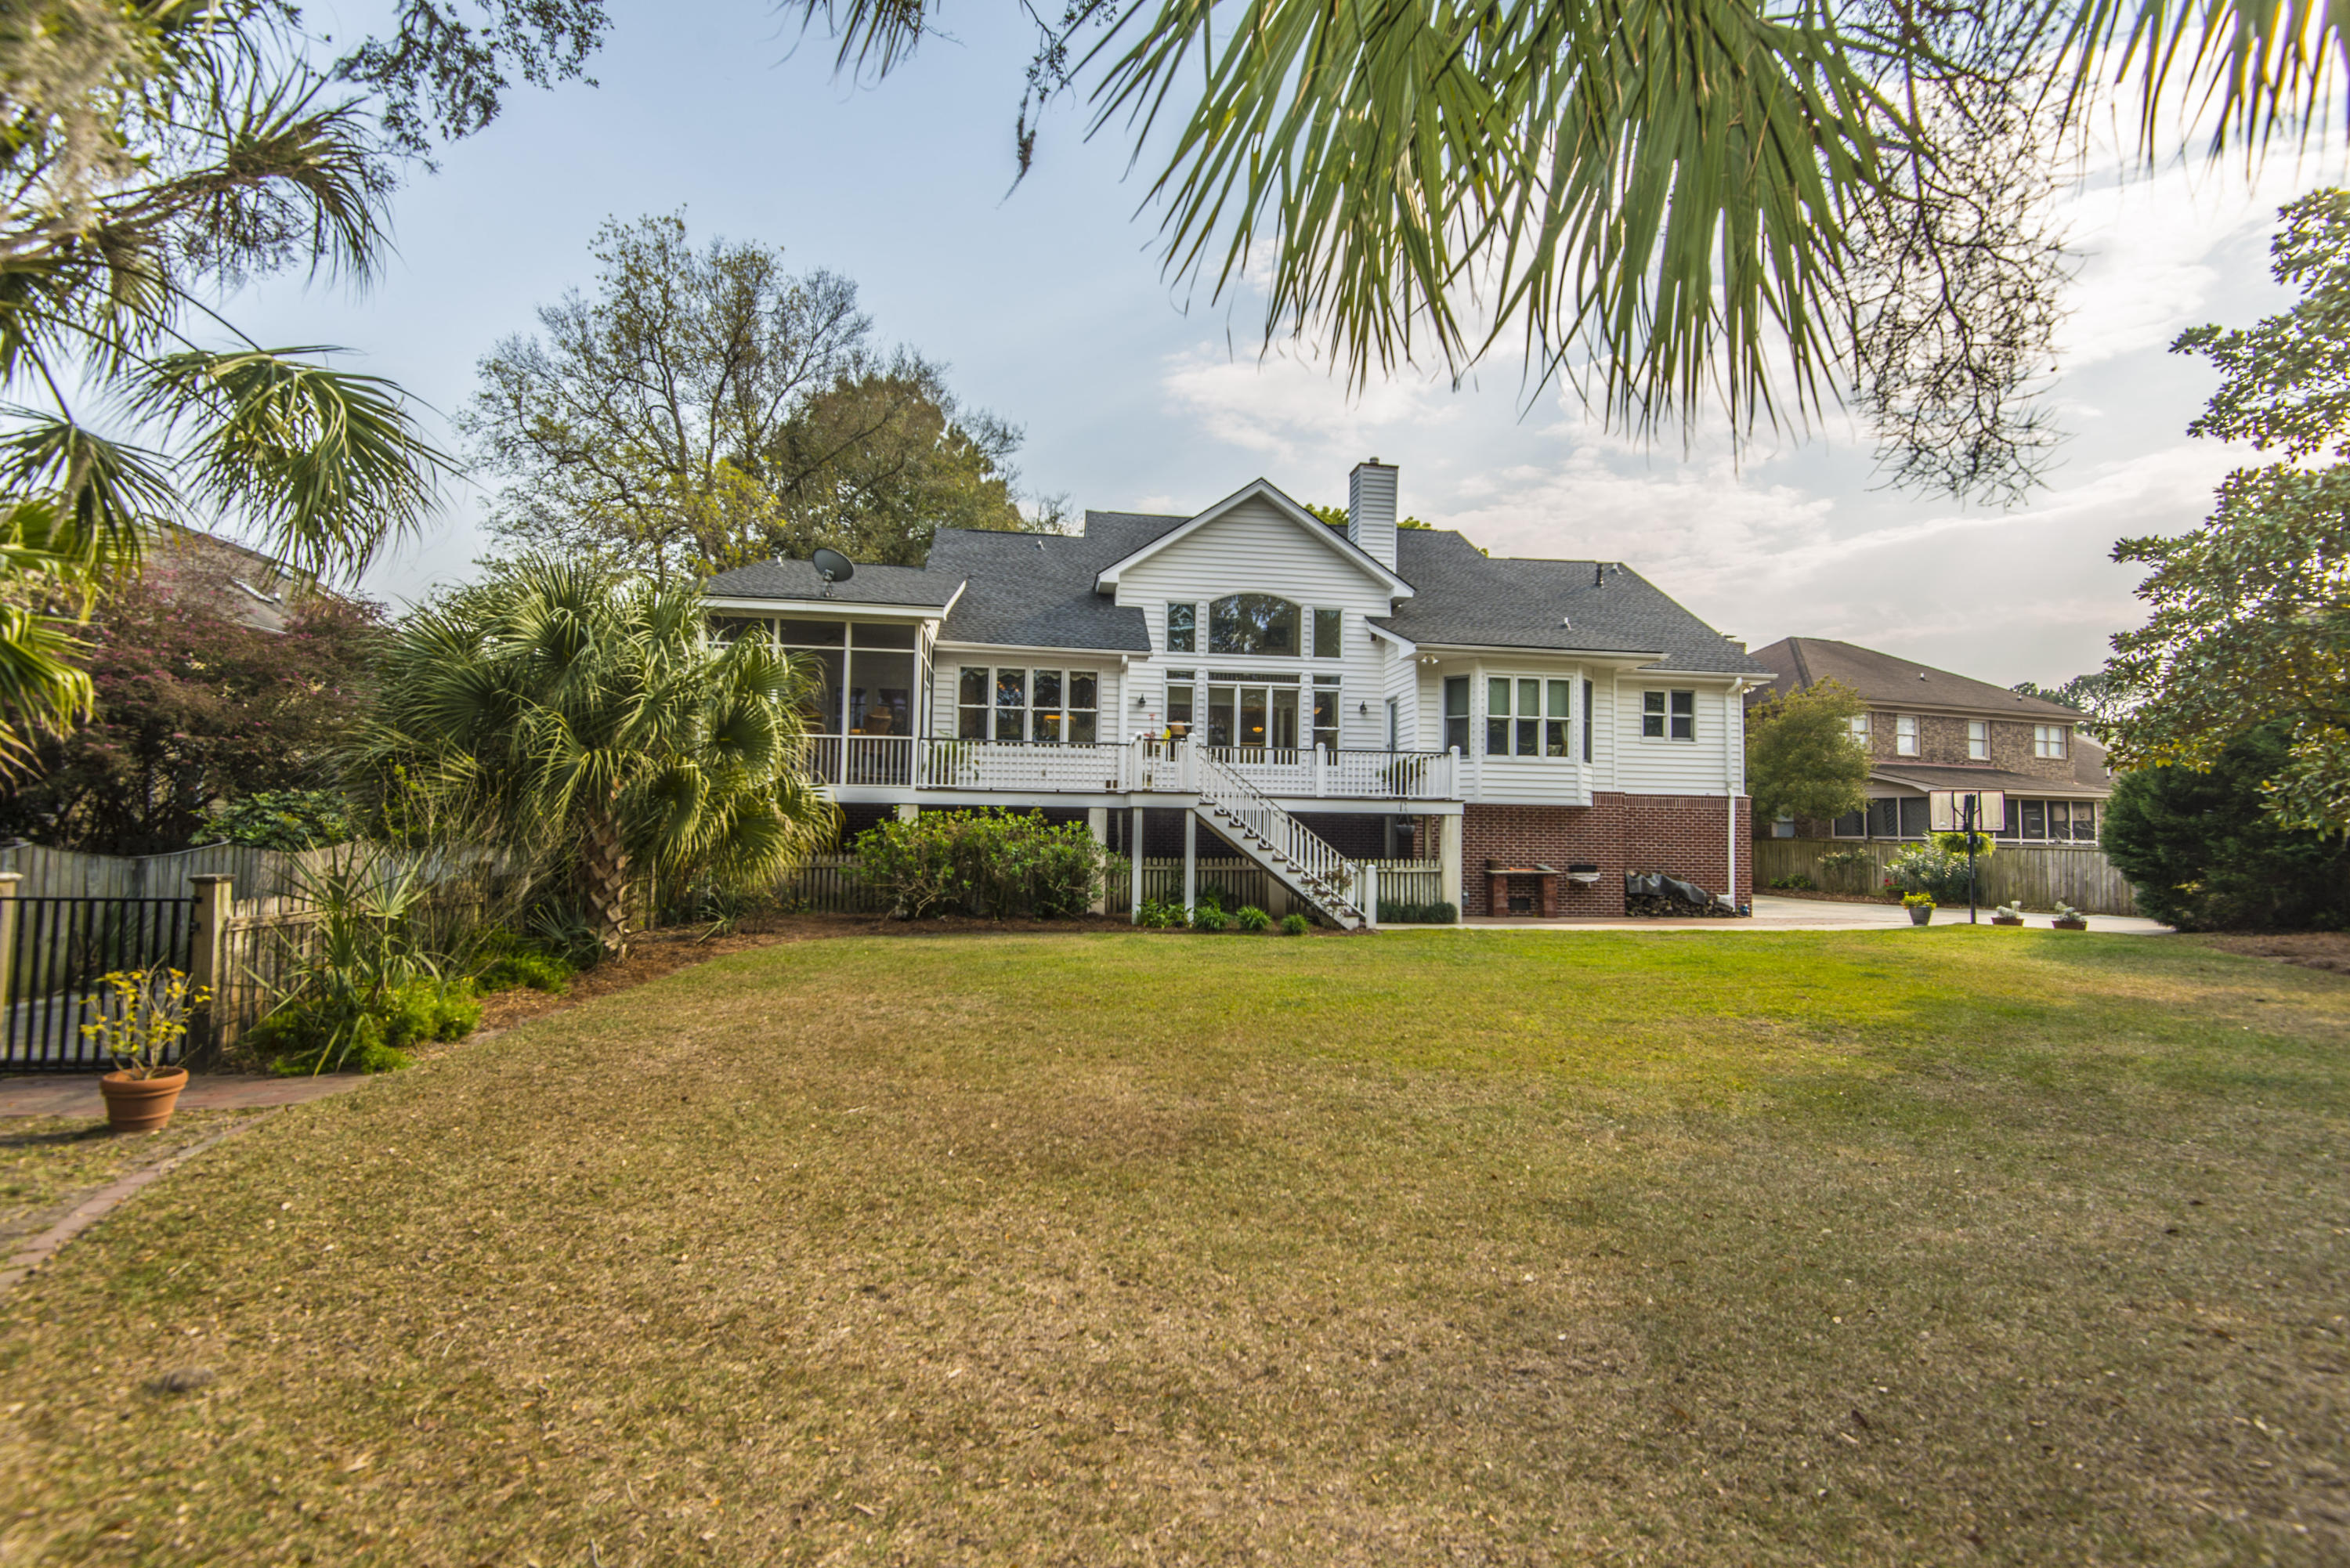 Stiles Point Plantation Homes For Sale - 906 Kushiwah Creek, Charleston, SC - 49